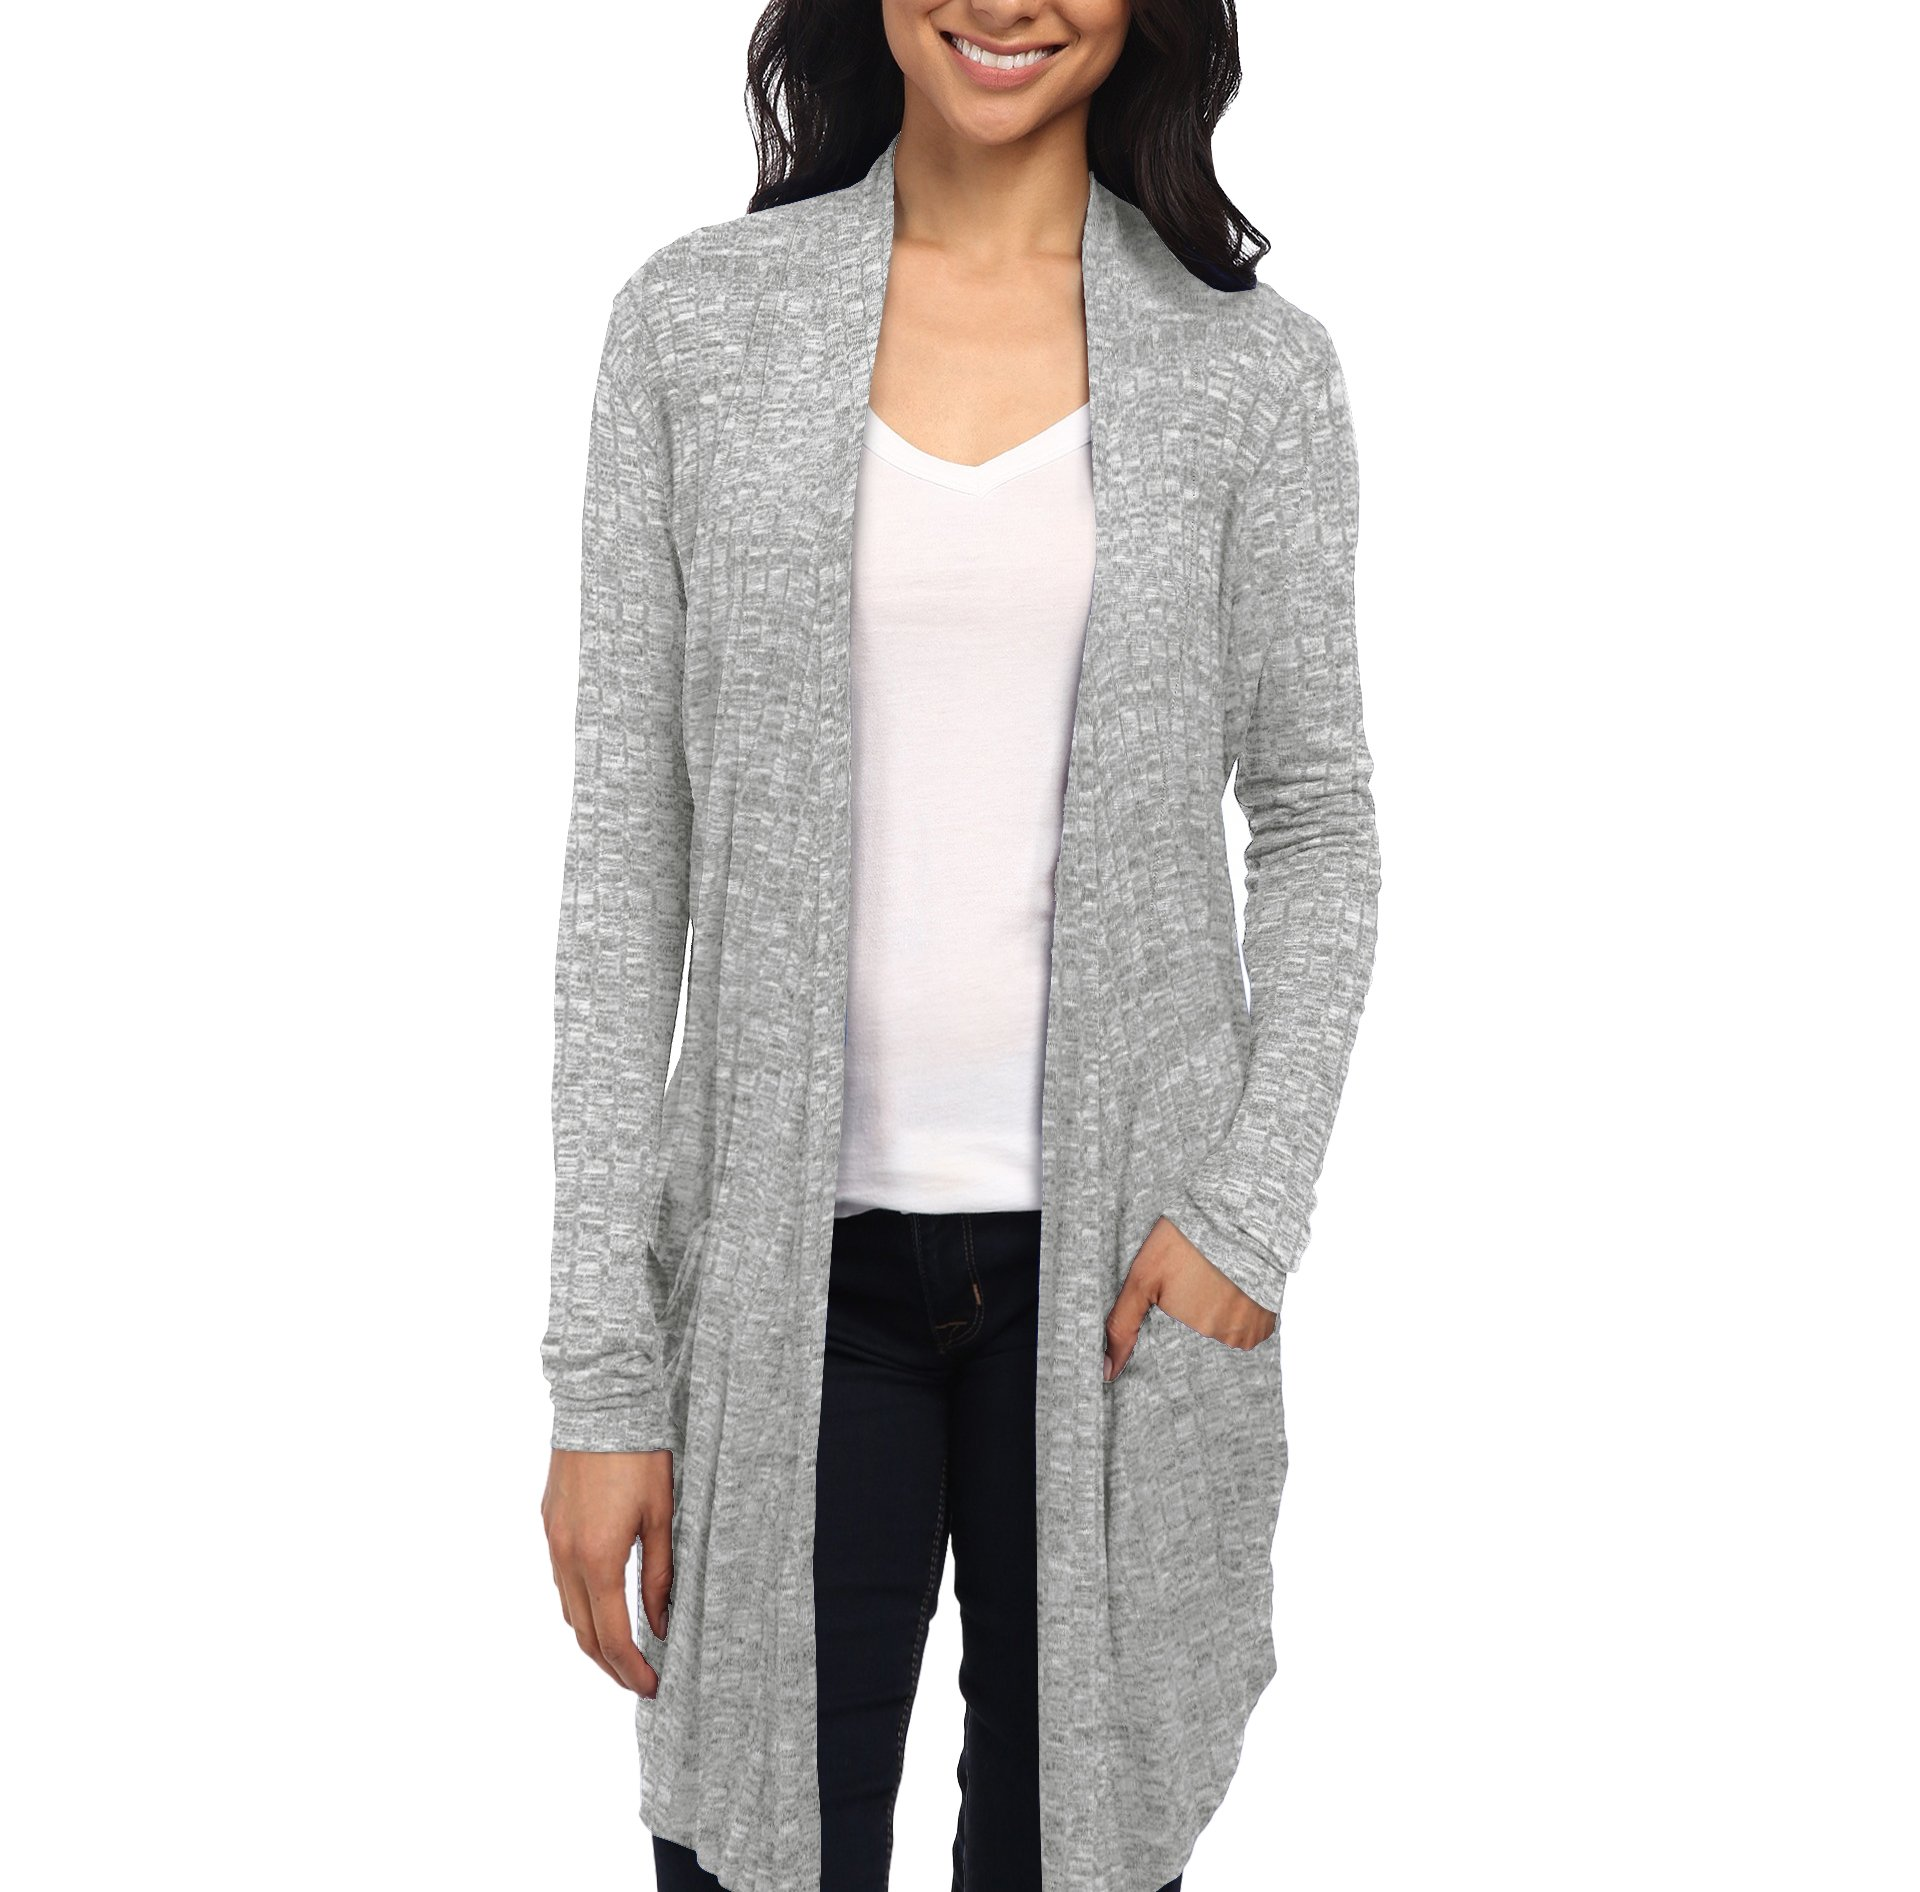 Womens Casual Open Front Drape Cardigan KSKW31127 HEATHER GREY Xlarge